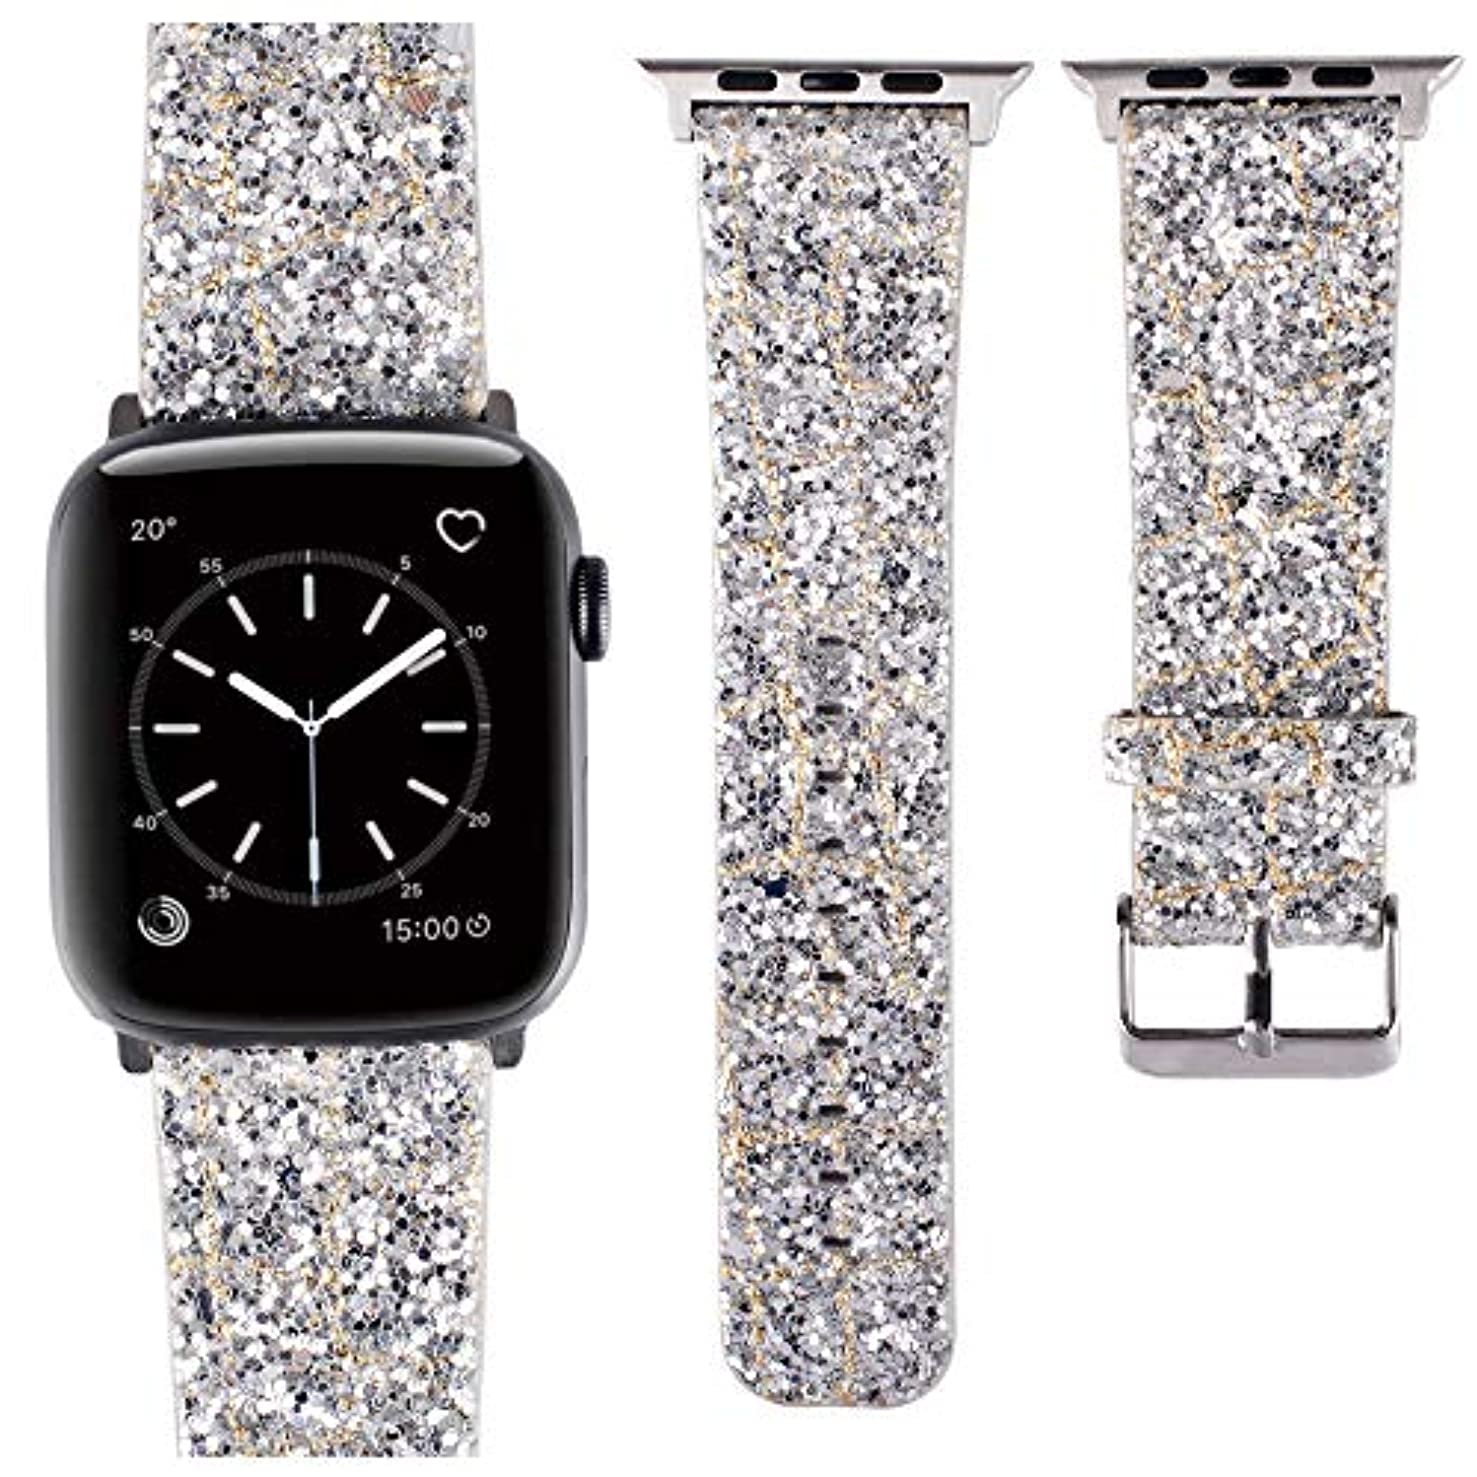 AKOPUGA Compatible with Apple Watch Band 42mm 44mm Shiny 3D Power Glitter Bling Leather Wristband iWatch Strap Replacement for Apple Watch Series 4/3/2/1(Silver, 42mm/44mm)